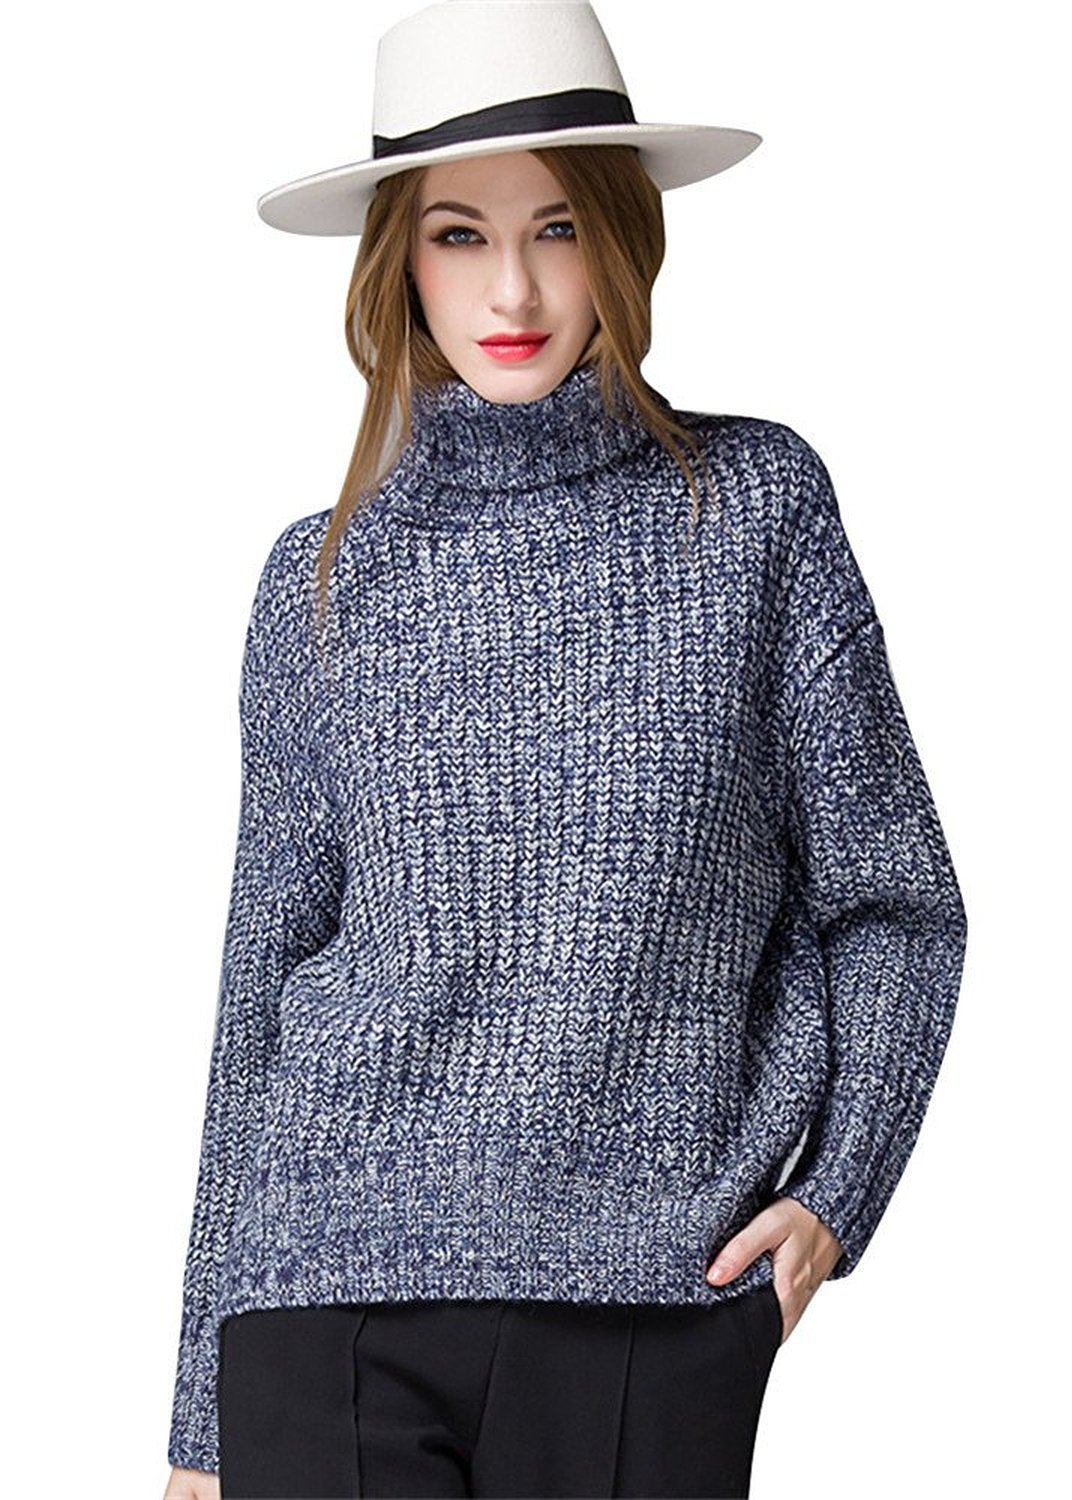 Women's Turtleneck Chunky Knit Pullover Sweaters, Blue, One size ...